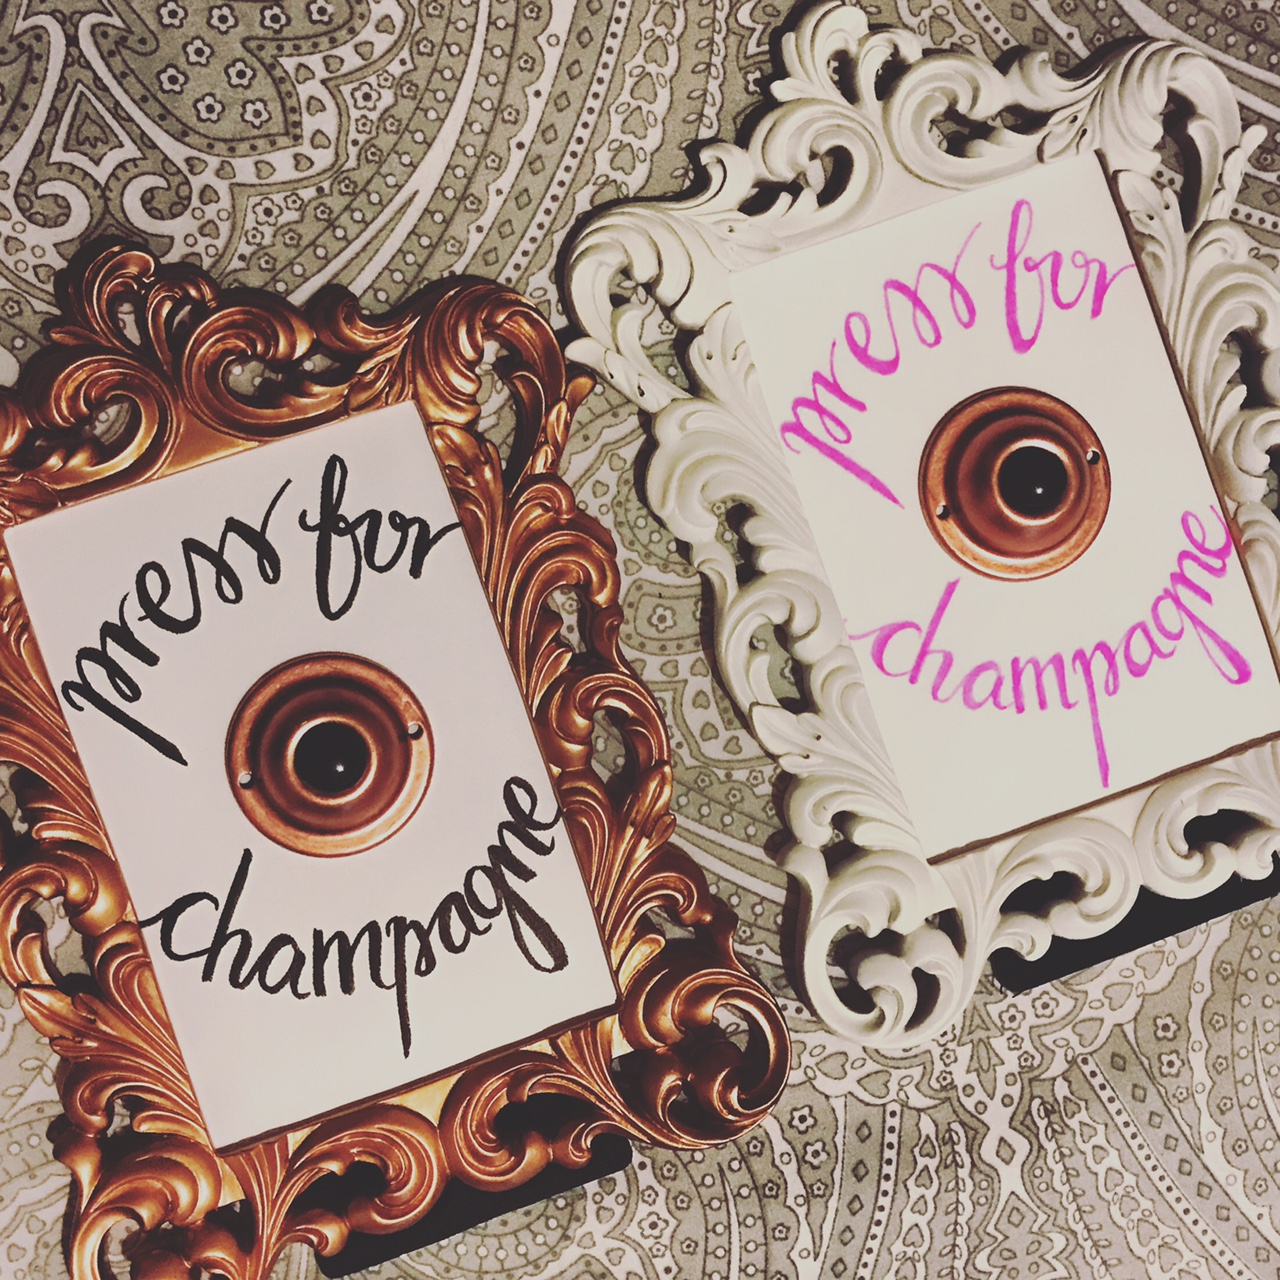 DIY your own 'Press for Champagne' sign with this simple tutorial